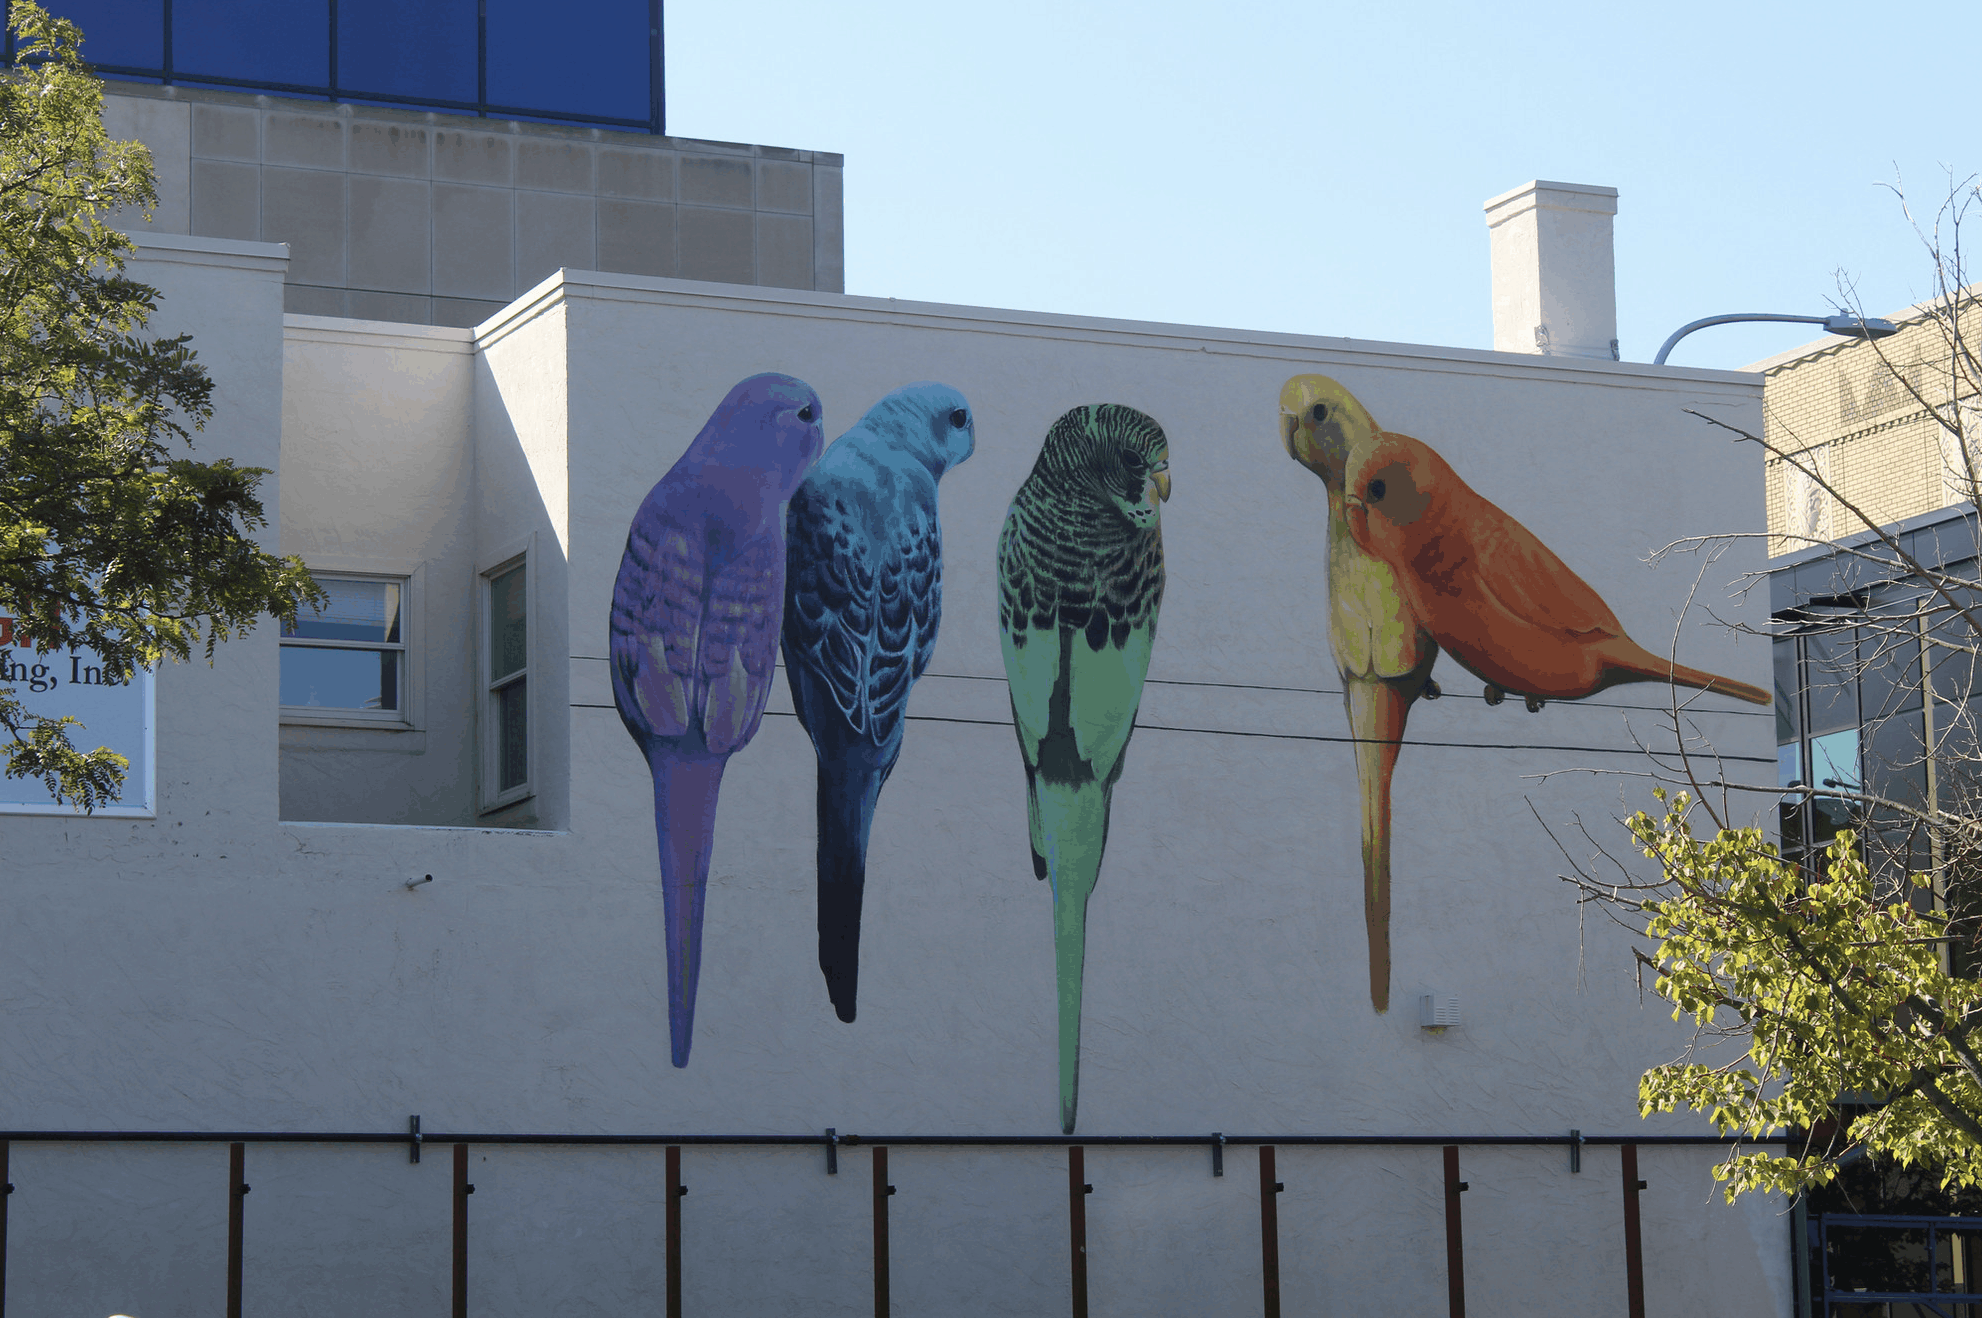 Realistic mural of colorful birds painted on the side of a building in Montana.